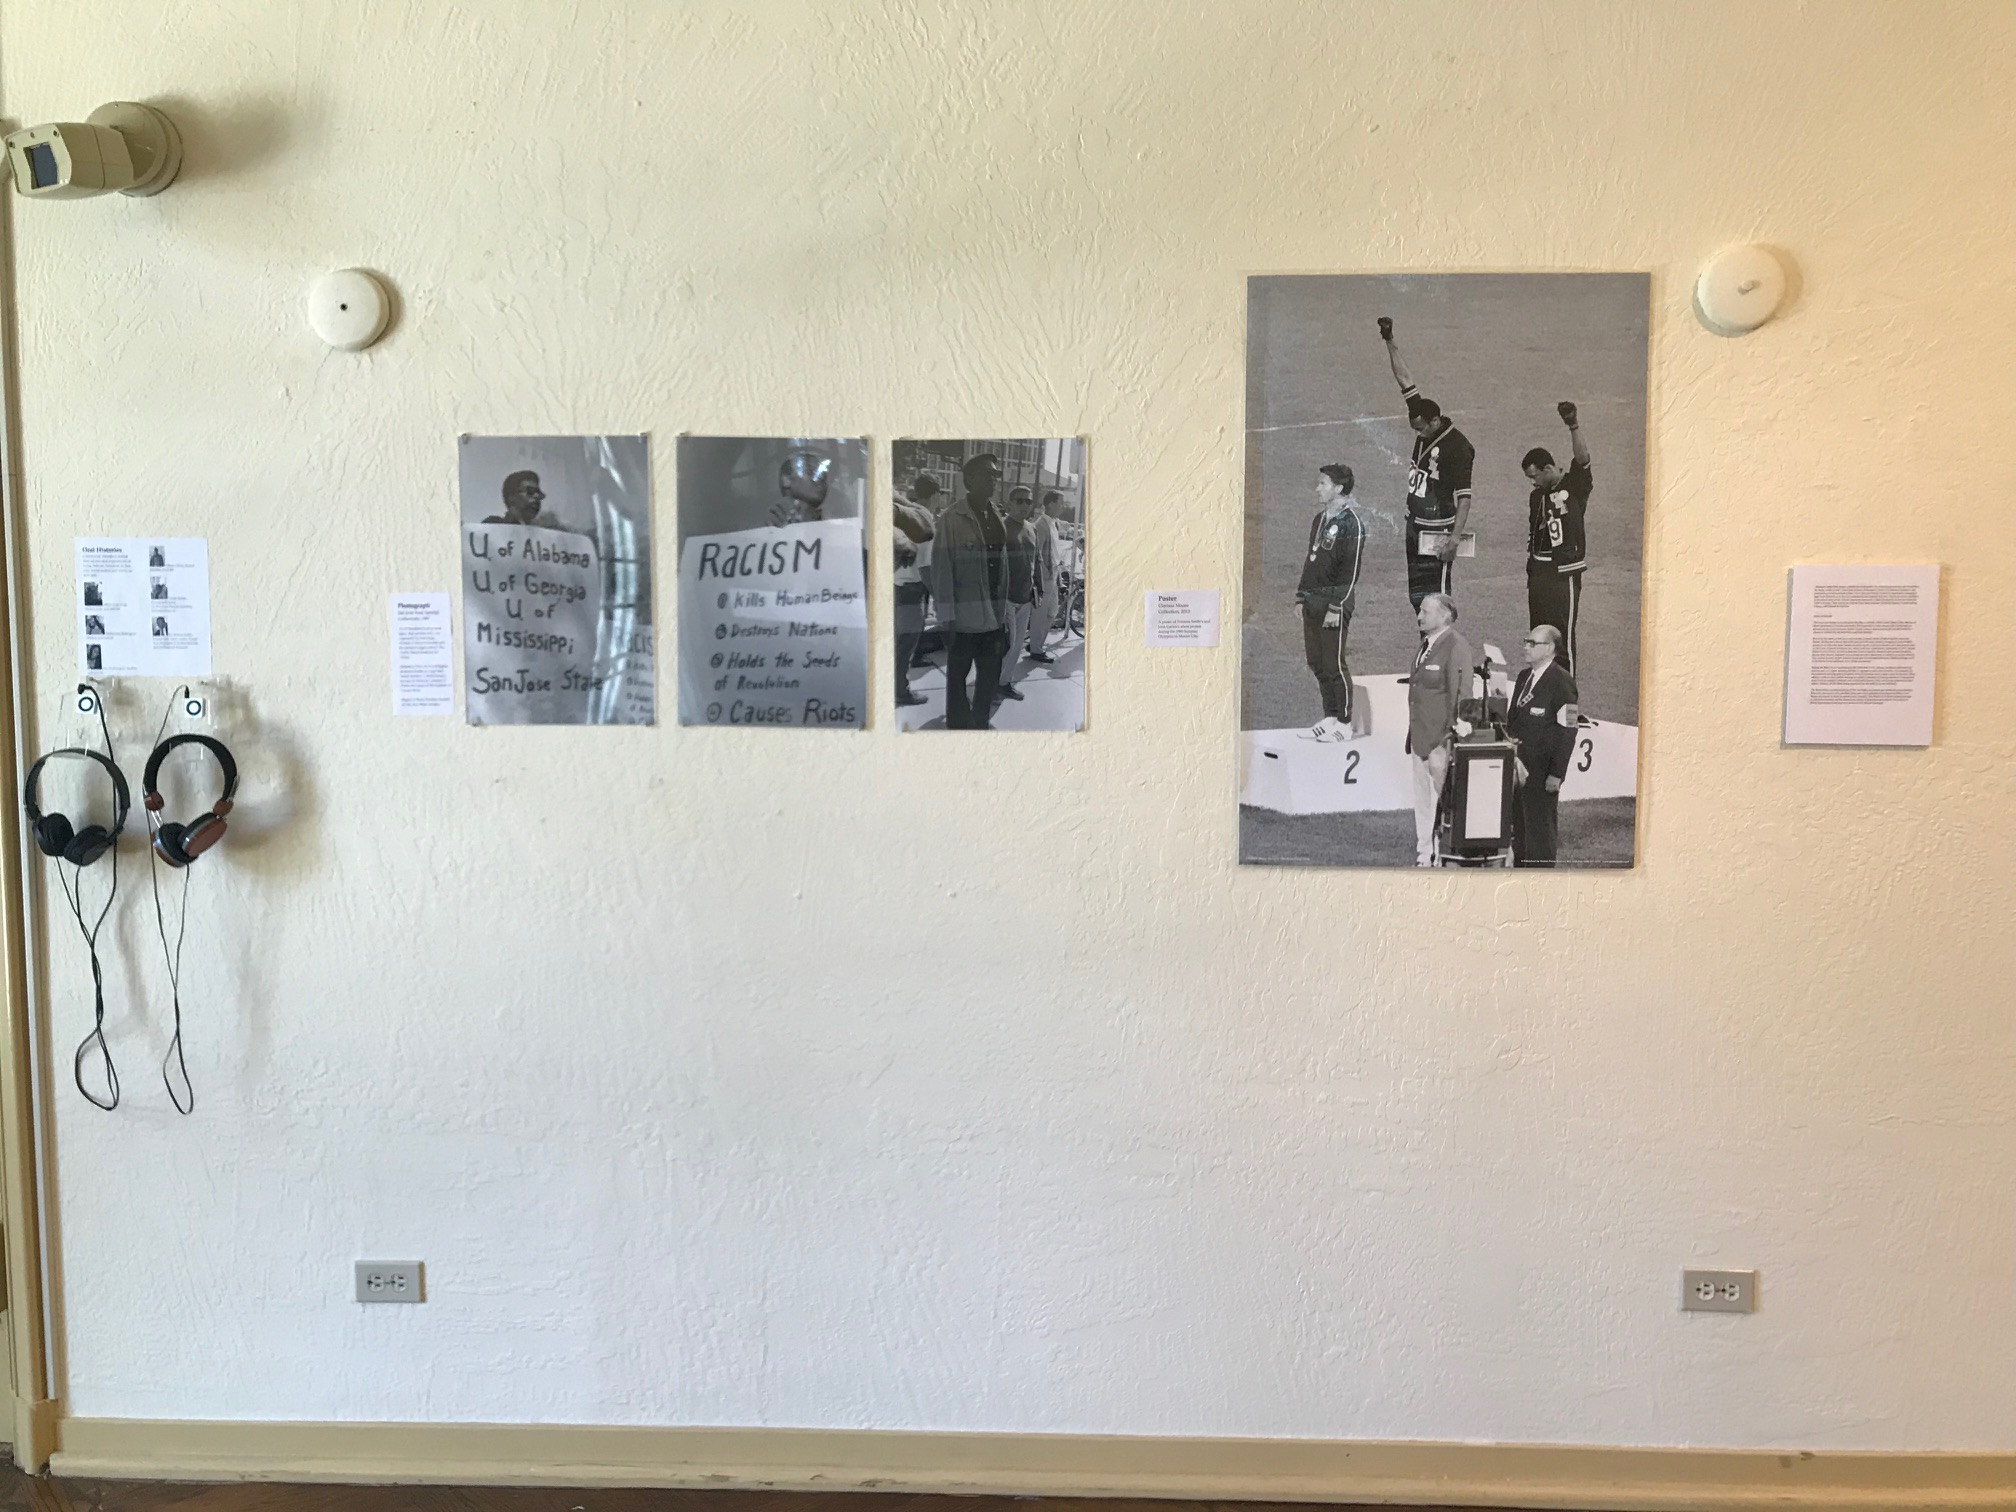 Figure 2.Power & Protest, community oral histories and poster of Tommie Smith'sand John Carlos's silent protest during the 1968 Summer Olympics in Mexico City.